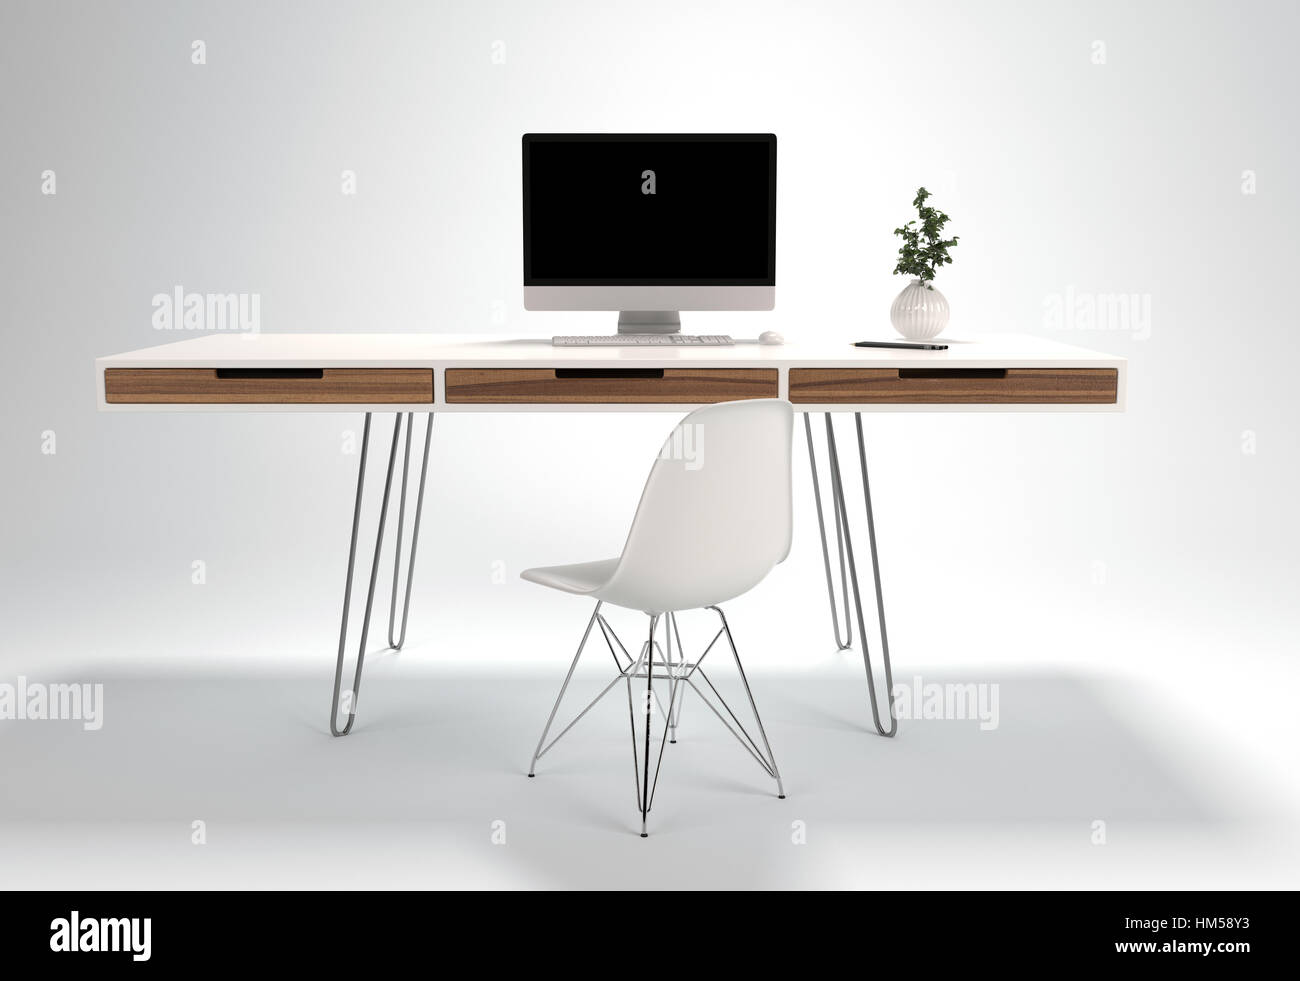 - Modern Workplace Design With Thin Wire Legs Desk And Light Chair